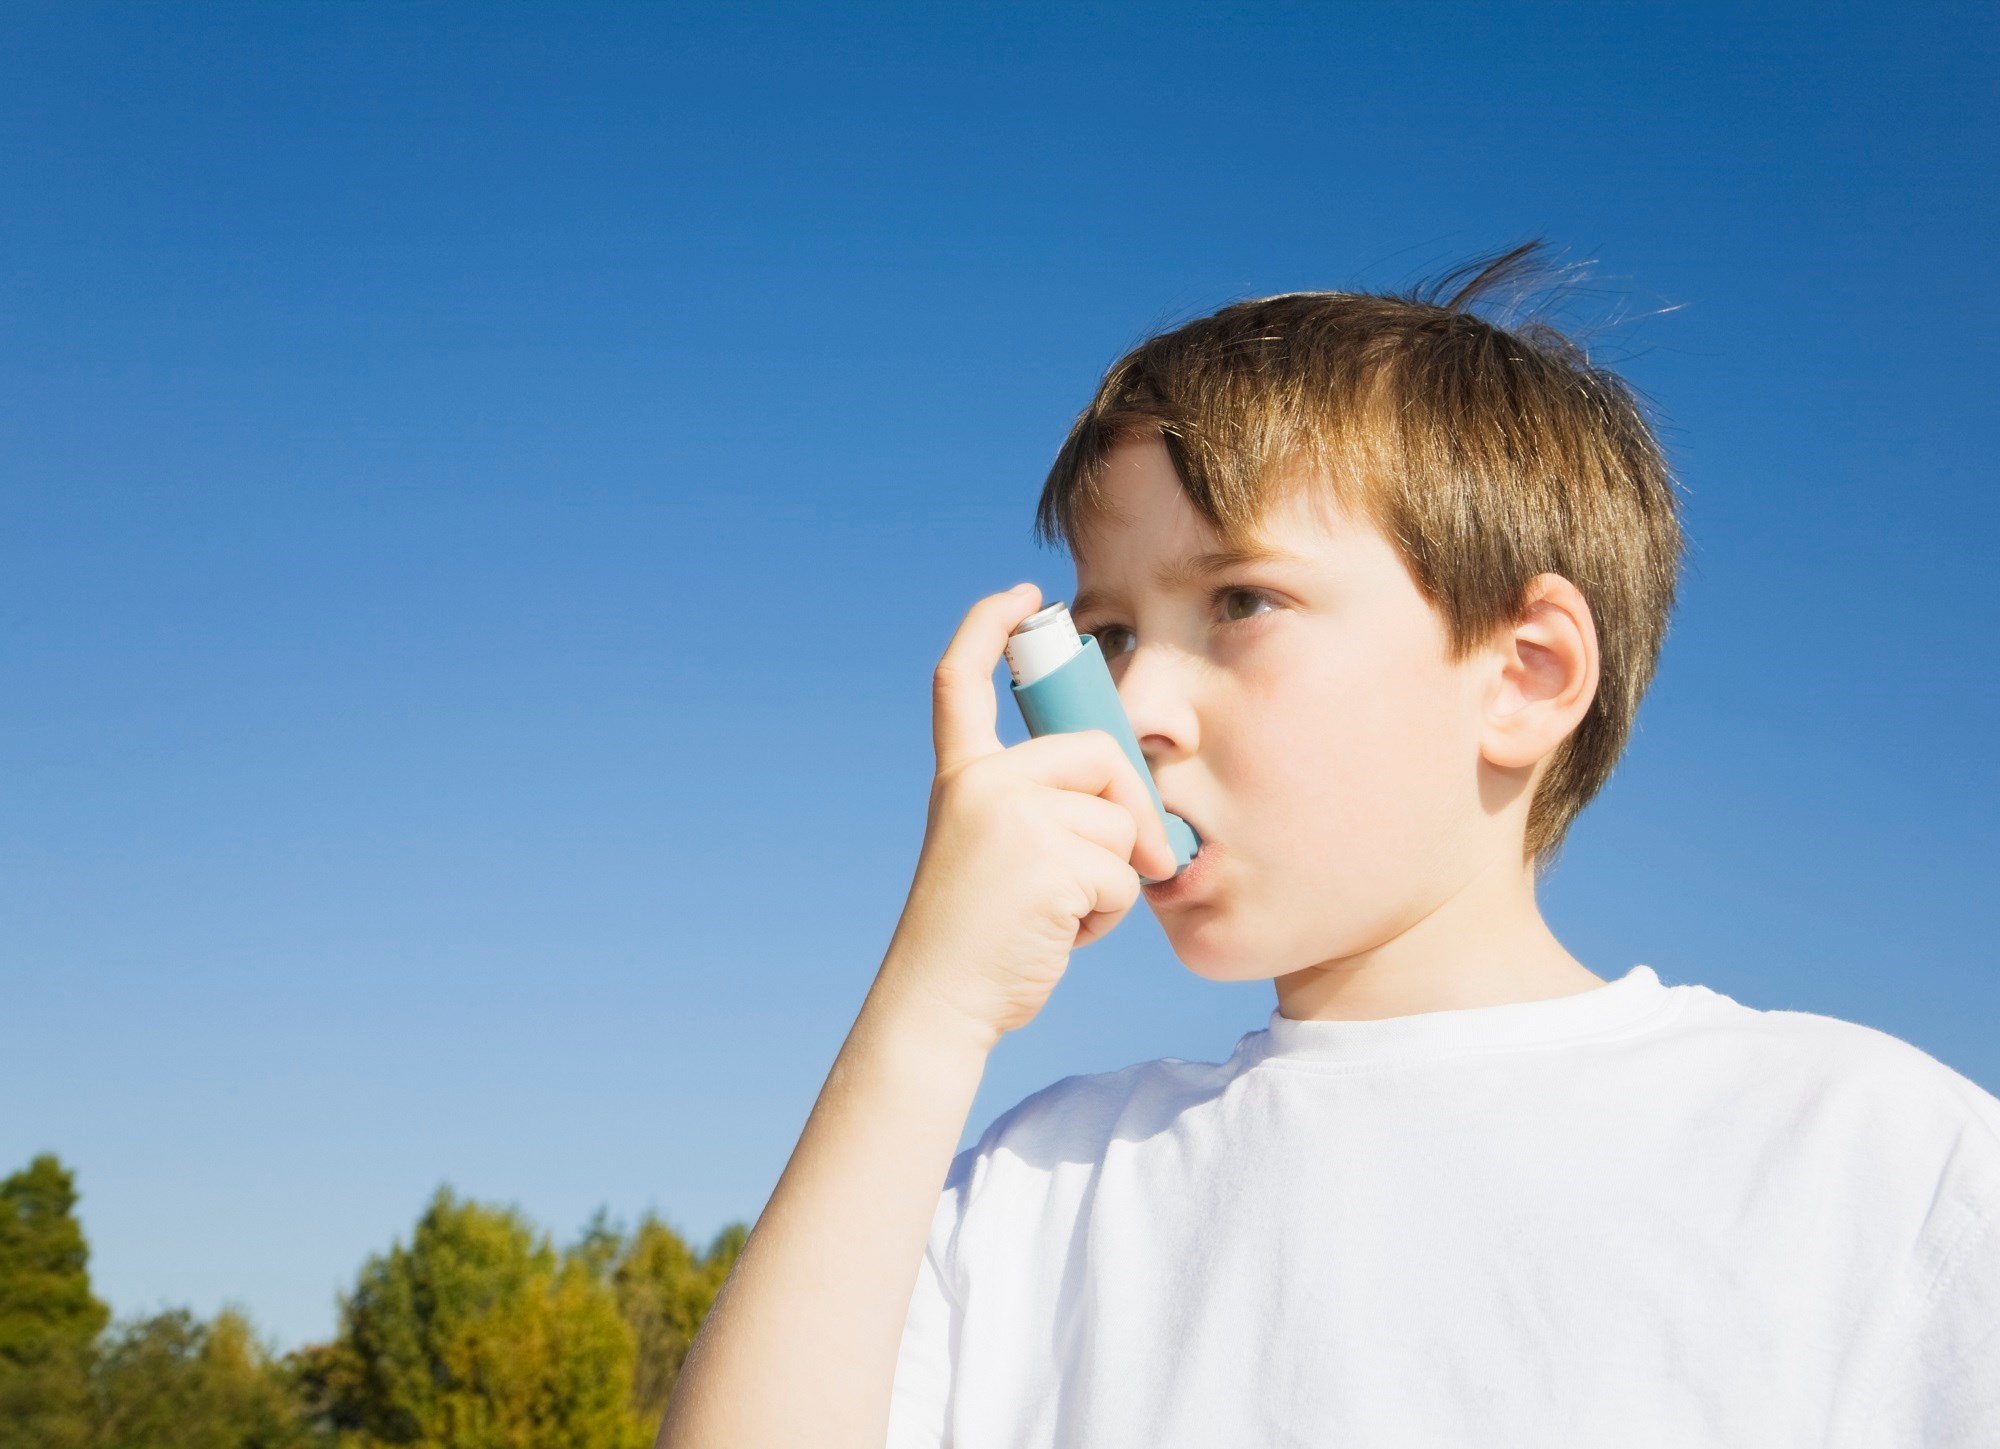 The researchers found that children with physician-diagnosed asthma had a higher risk for incident obesity vs those without asthma.